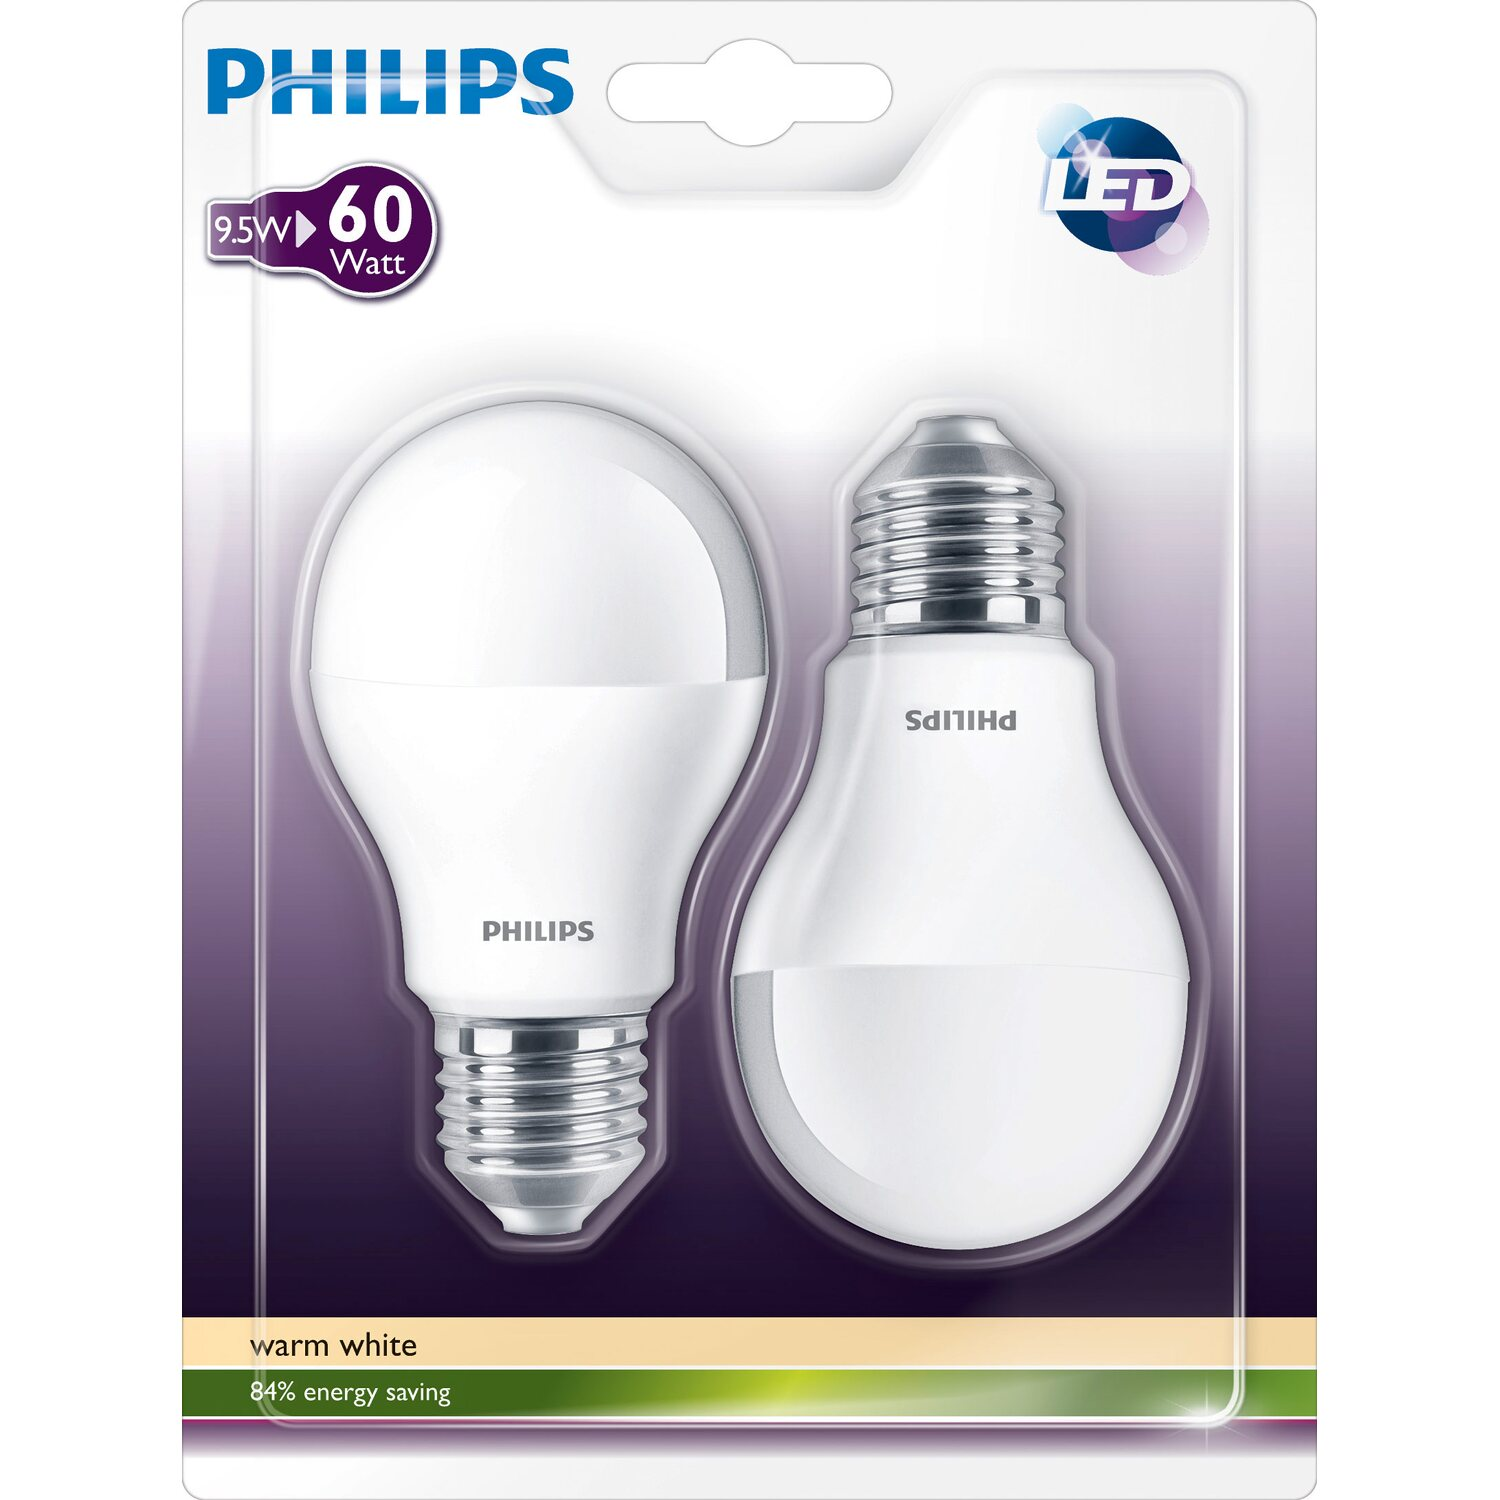 Philips led lampe glhlampenform e27 95 w 806 lm warmwei 2er philips led lampe glhlampenform parisarafo Choice Image